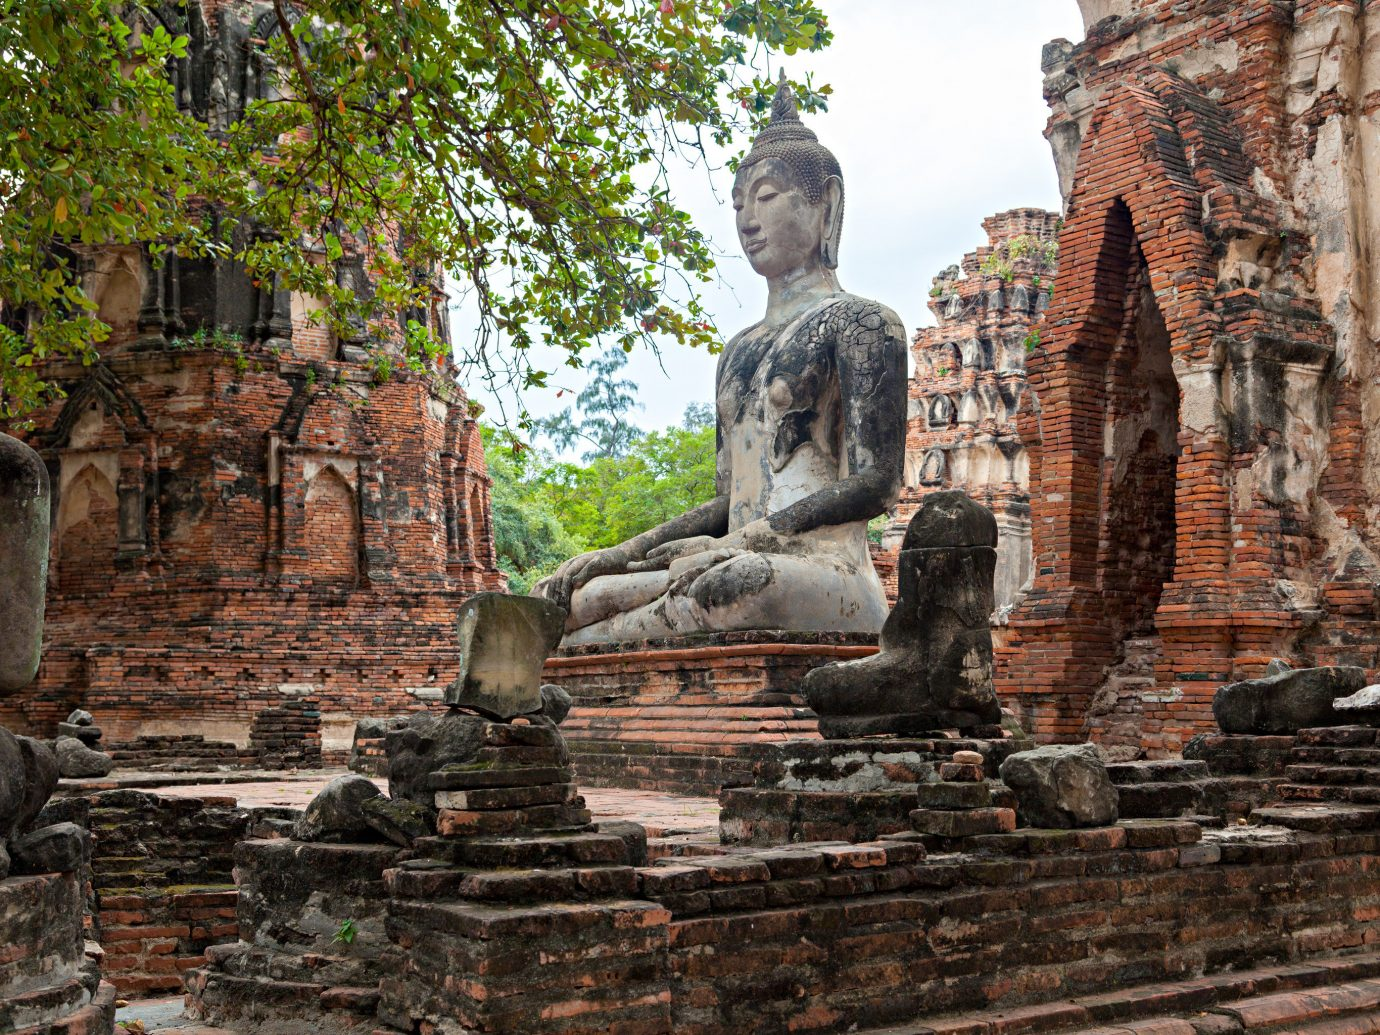 Jetsetter Guides building outdoor stone archaeological site Ruins brick ancient history rock wat statue monument place of worship temple hindu temple